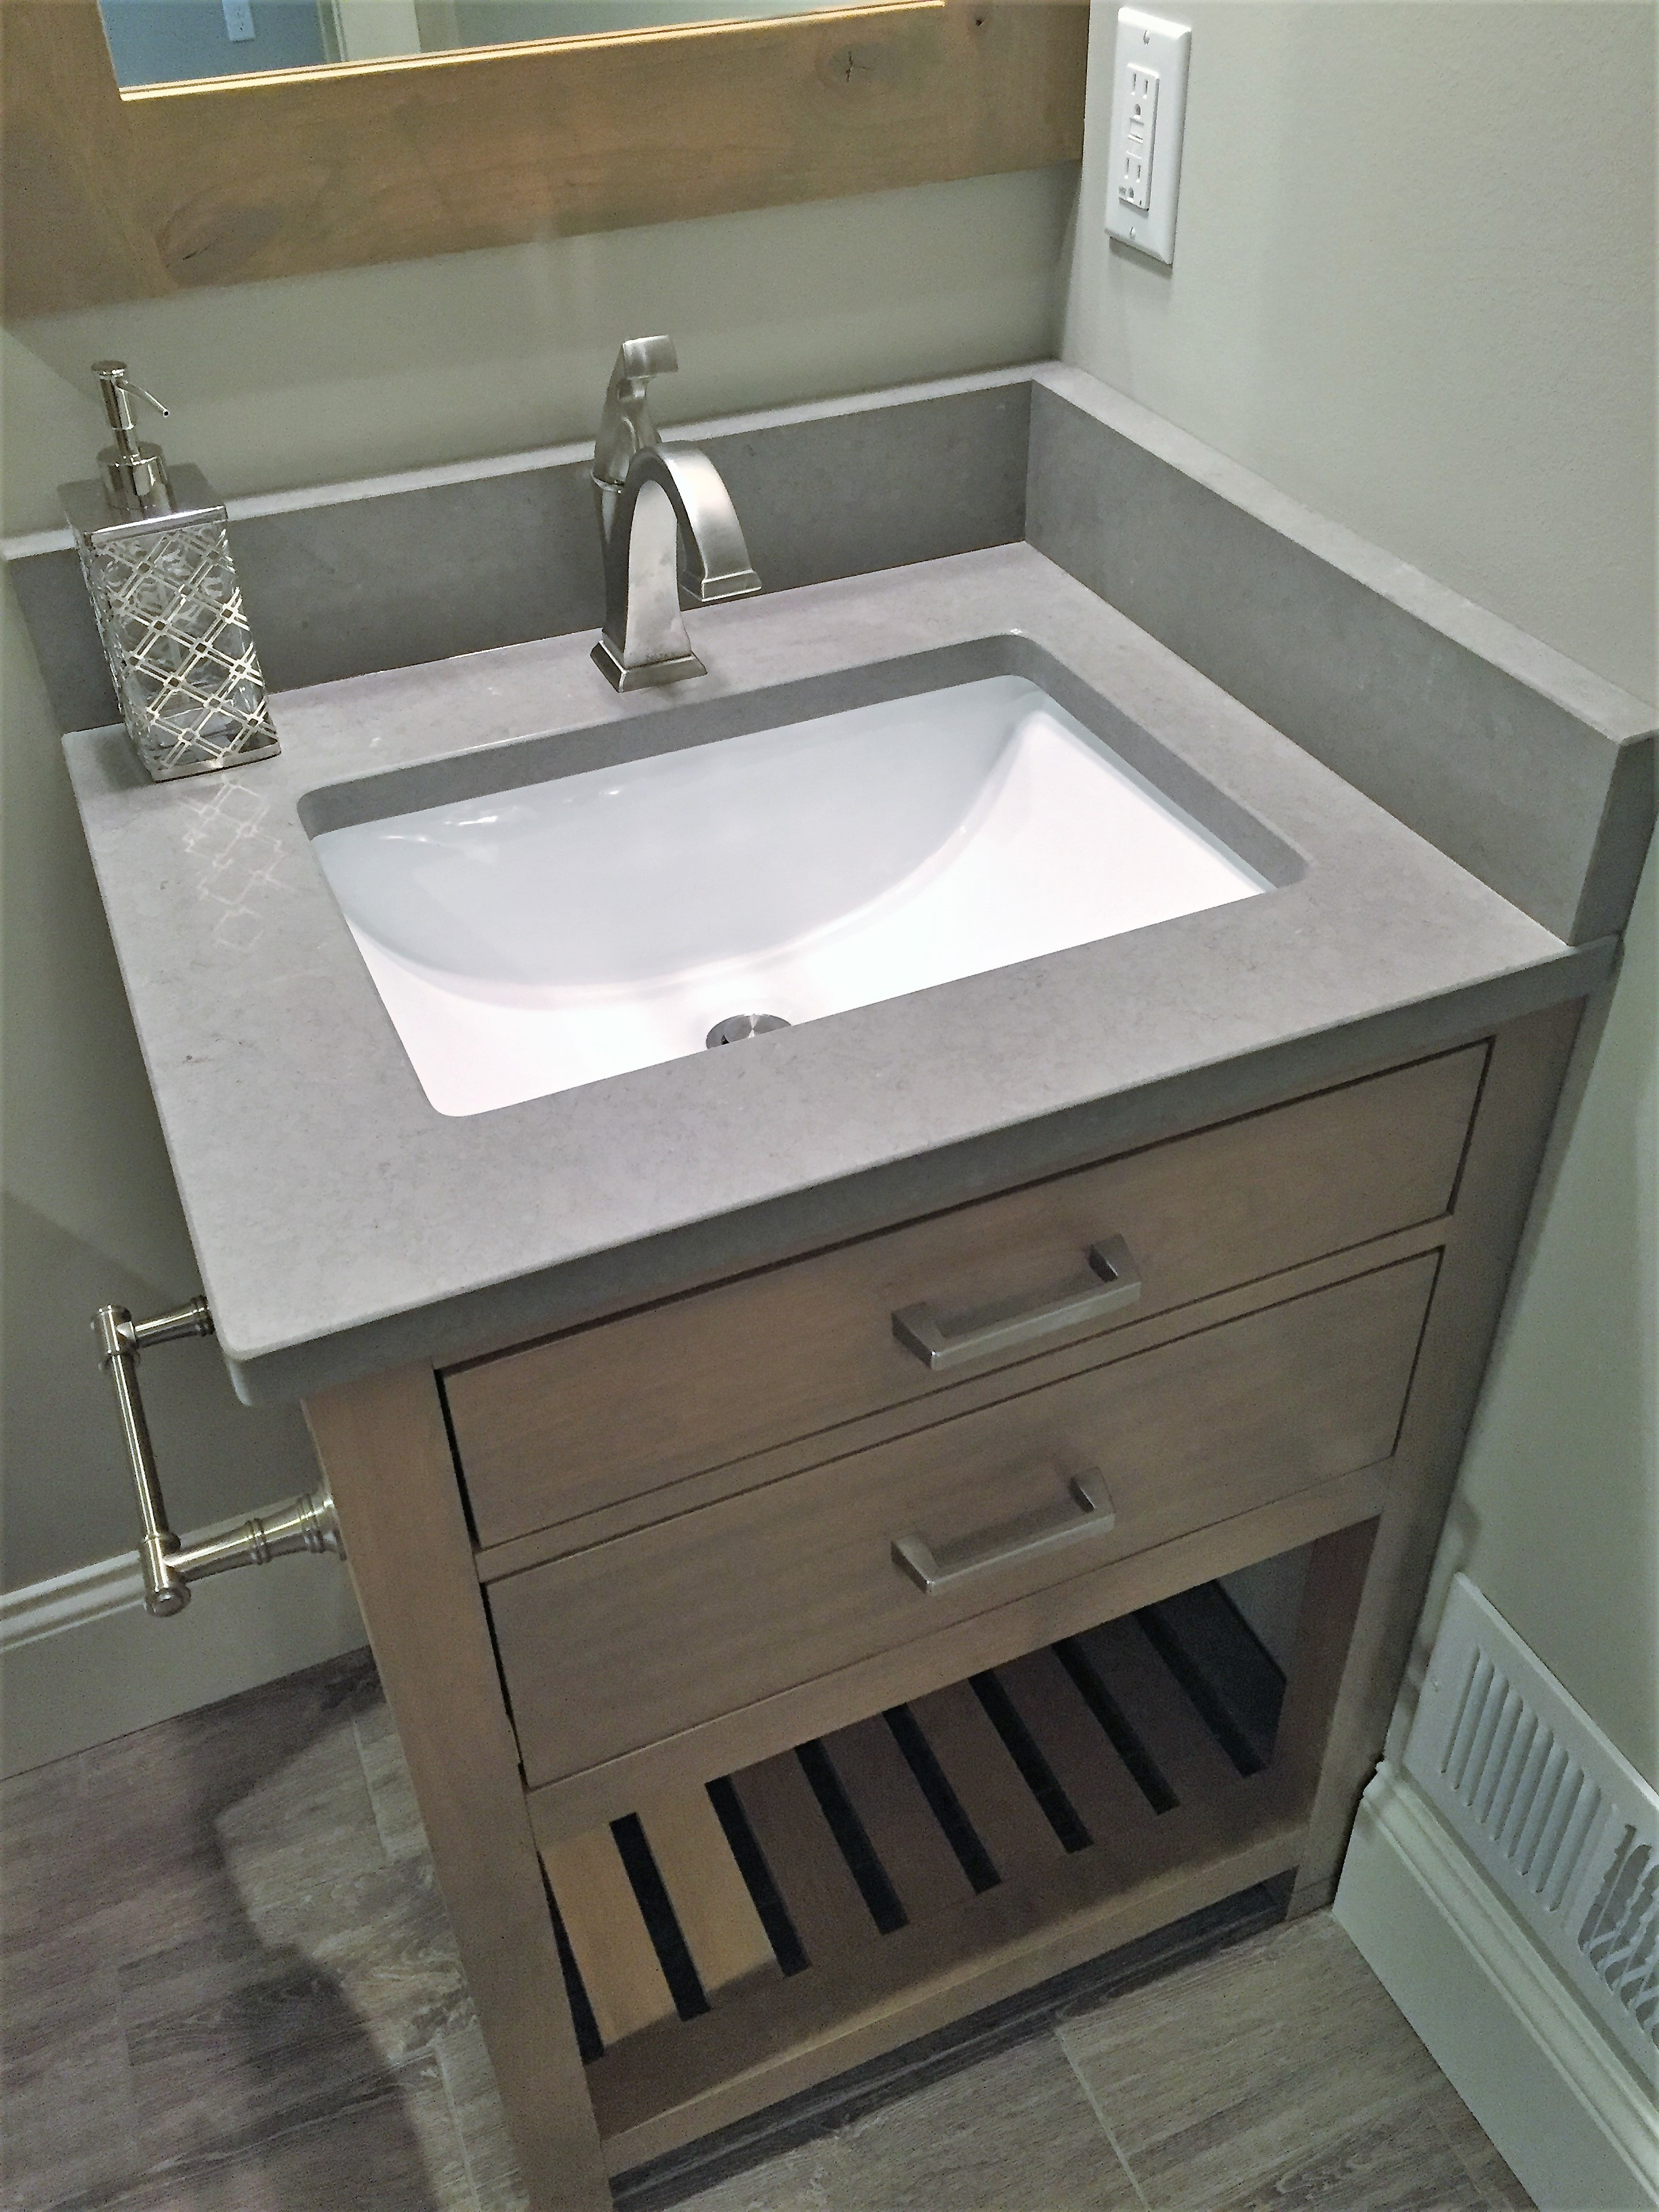 Picture of guest bathroom sink